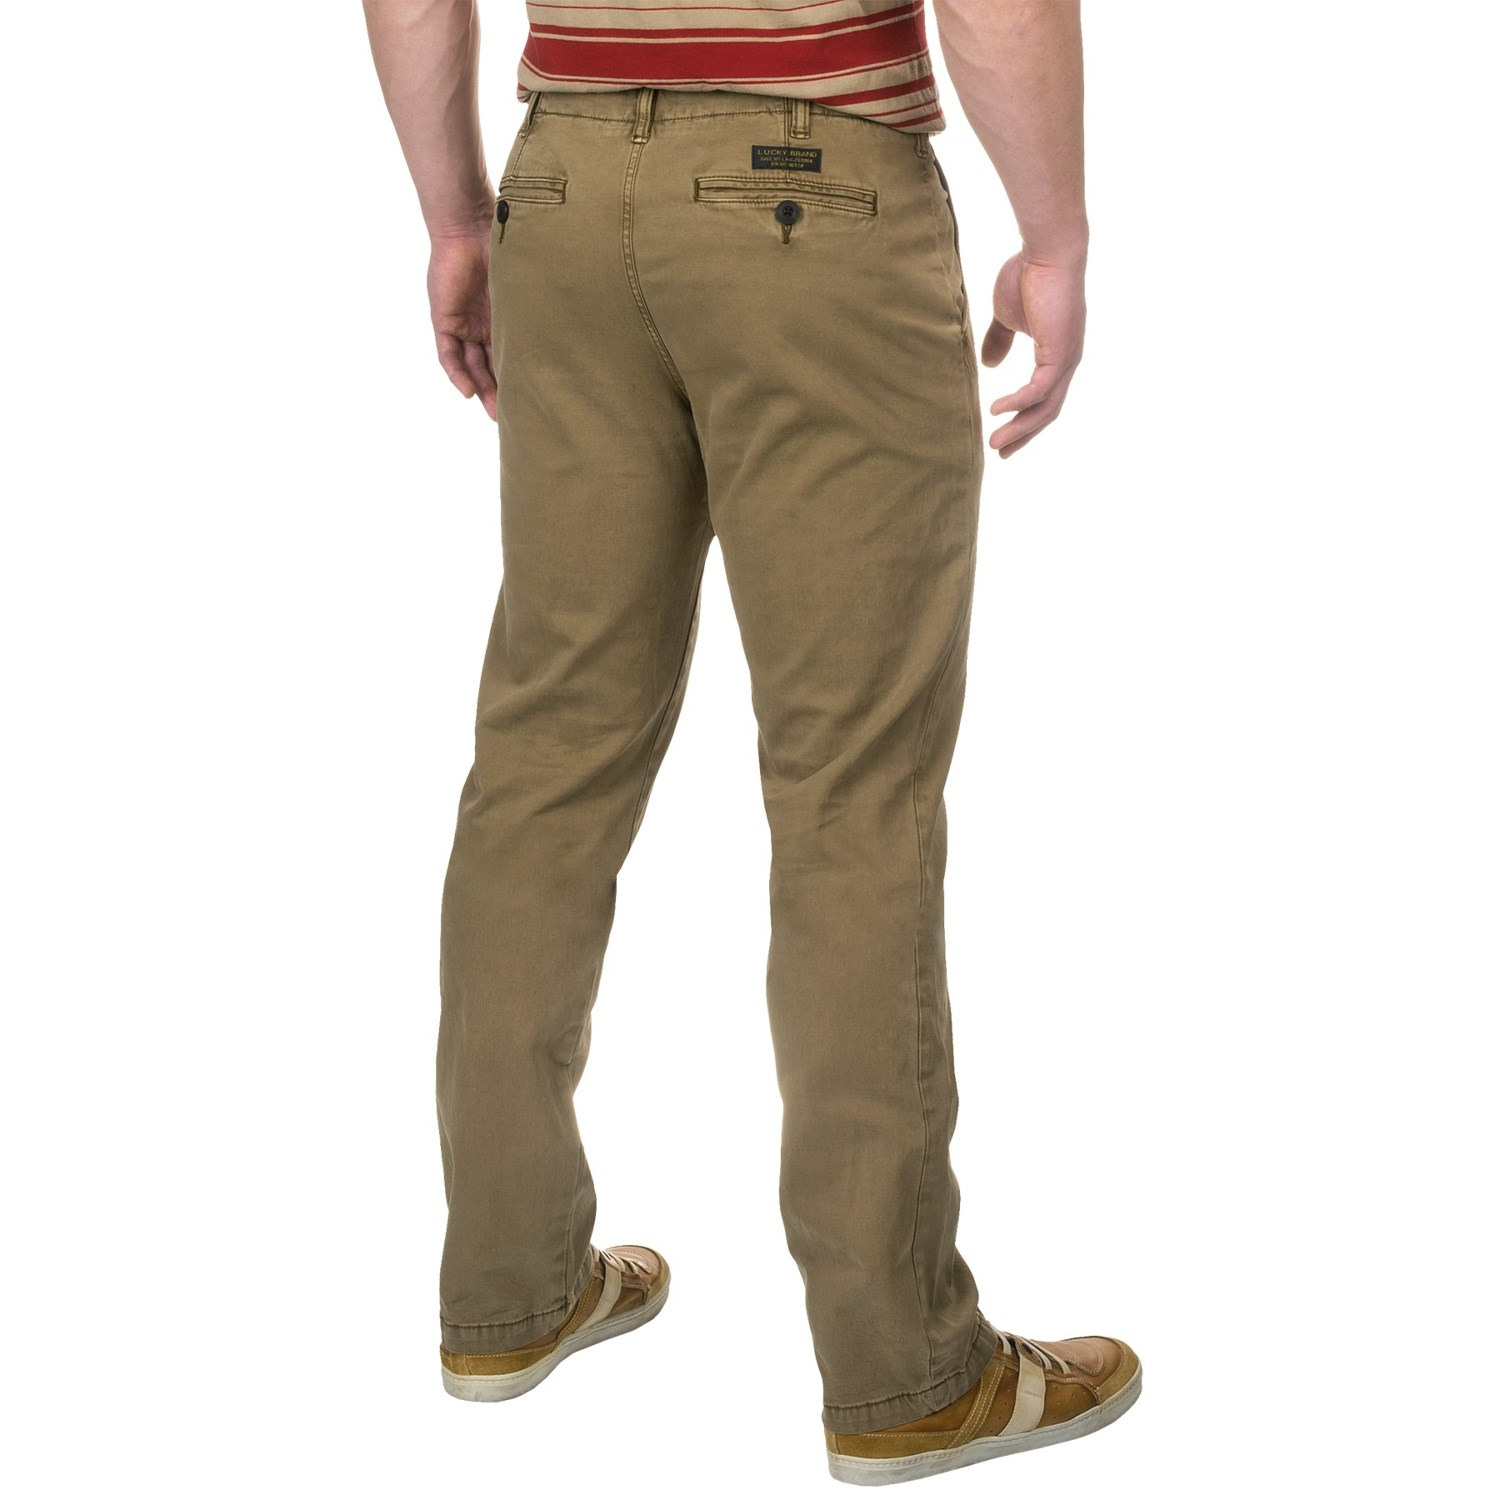 Style - Chino Casual Pants. Colors - Light Khaki Beige. Occasion - Casual. We have a large selection of clothing, shoes, belts and handbags. With over of the most desirable labels in our inventory, you're bound to find lots of rare and hard to find pieces as well as common necessities.